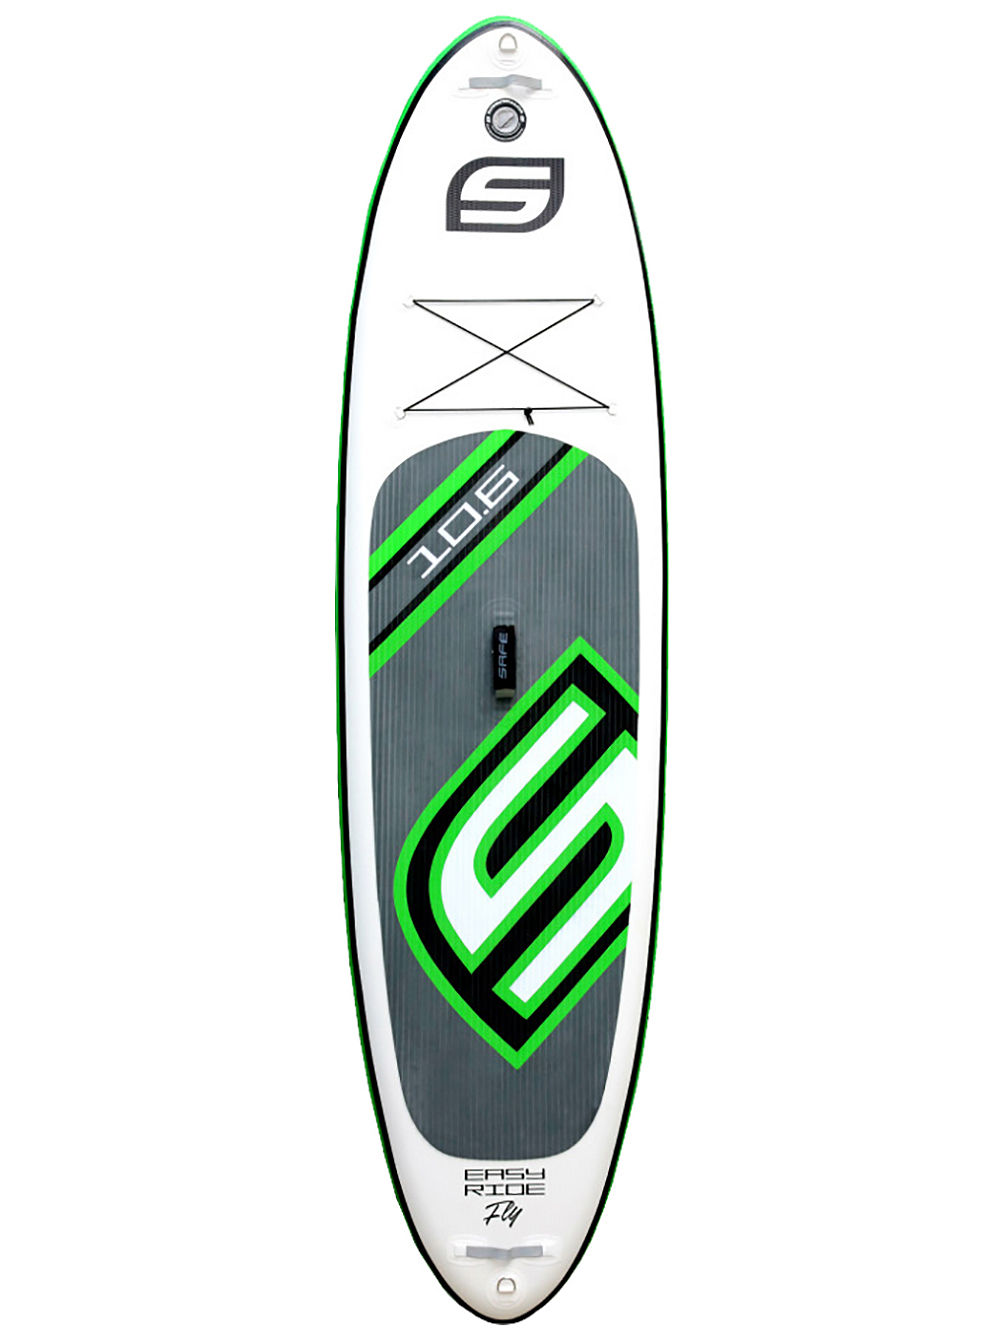 Easy Ride 10.6 Fly SUP Board